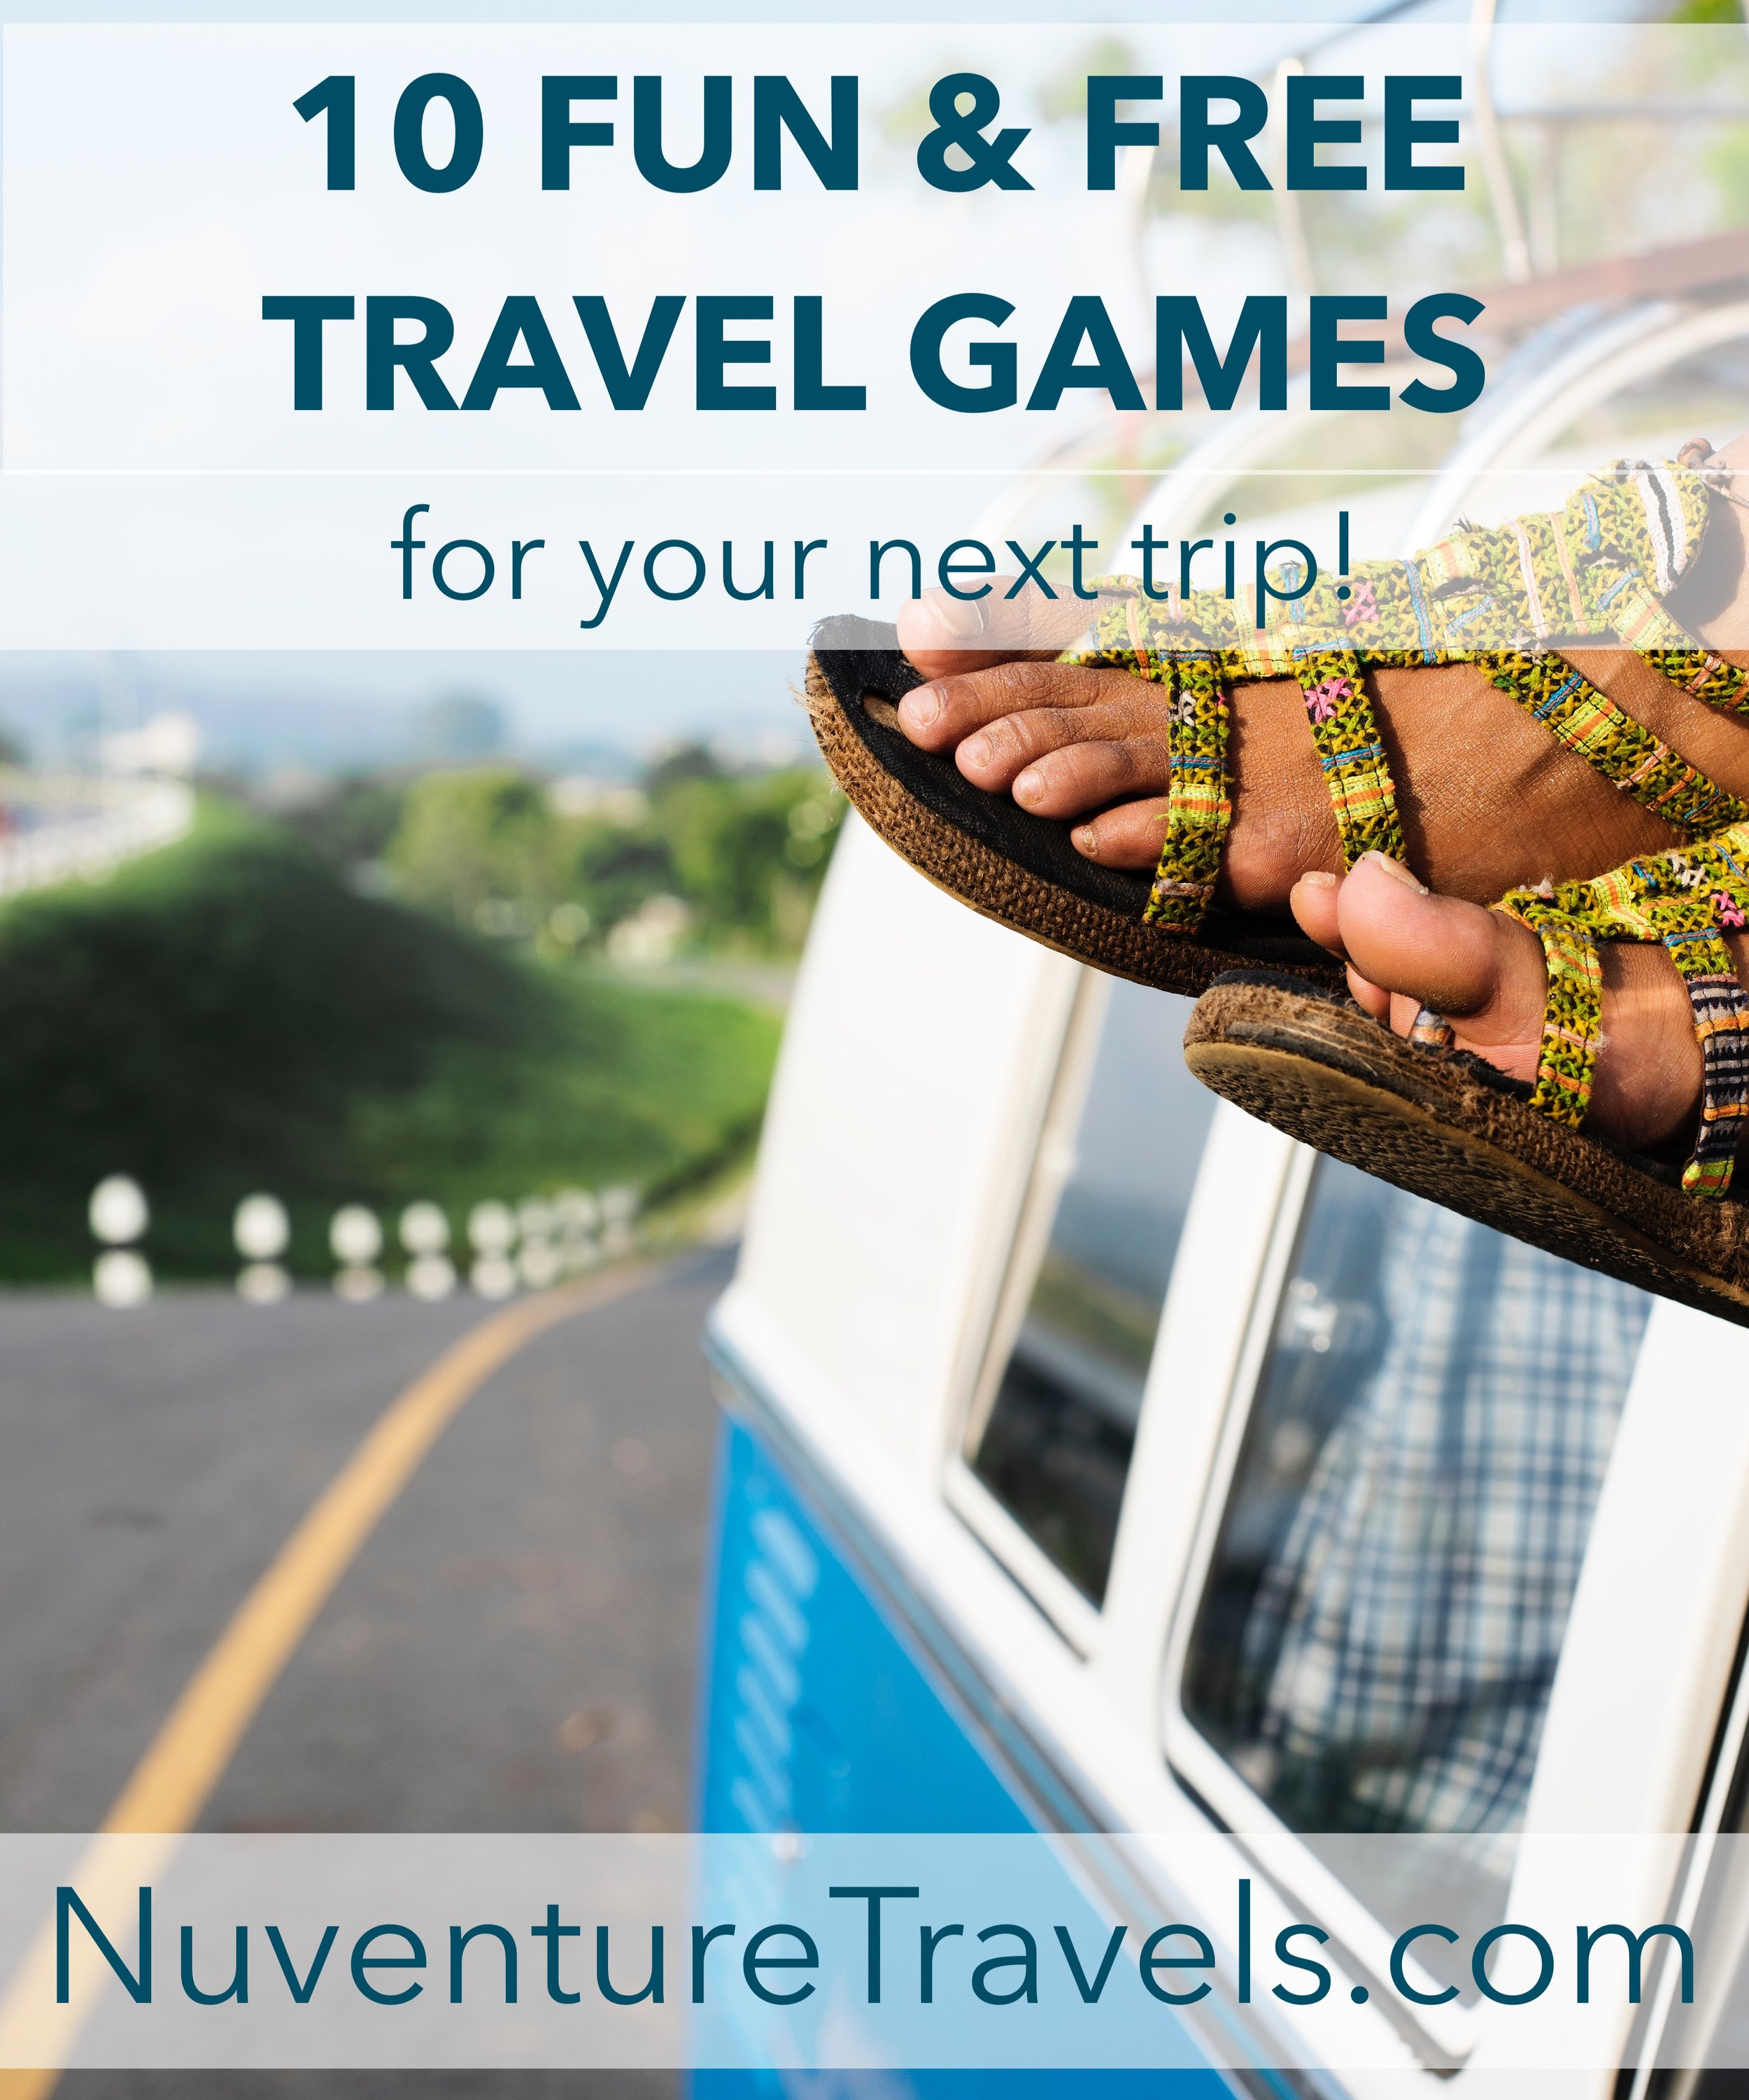 10 Fun & Free Travel Games for Road Trips